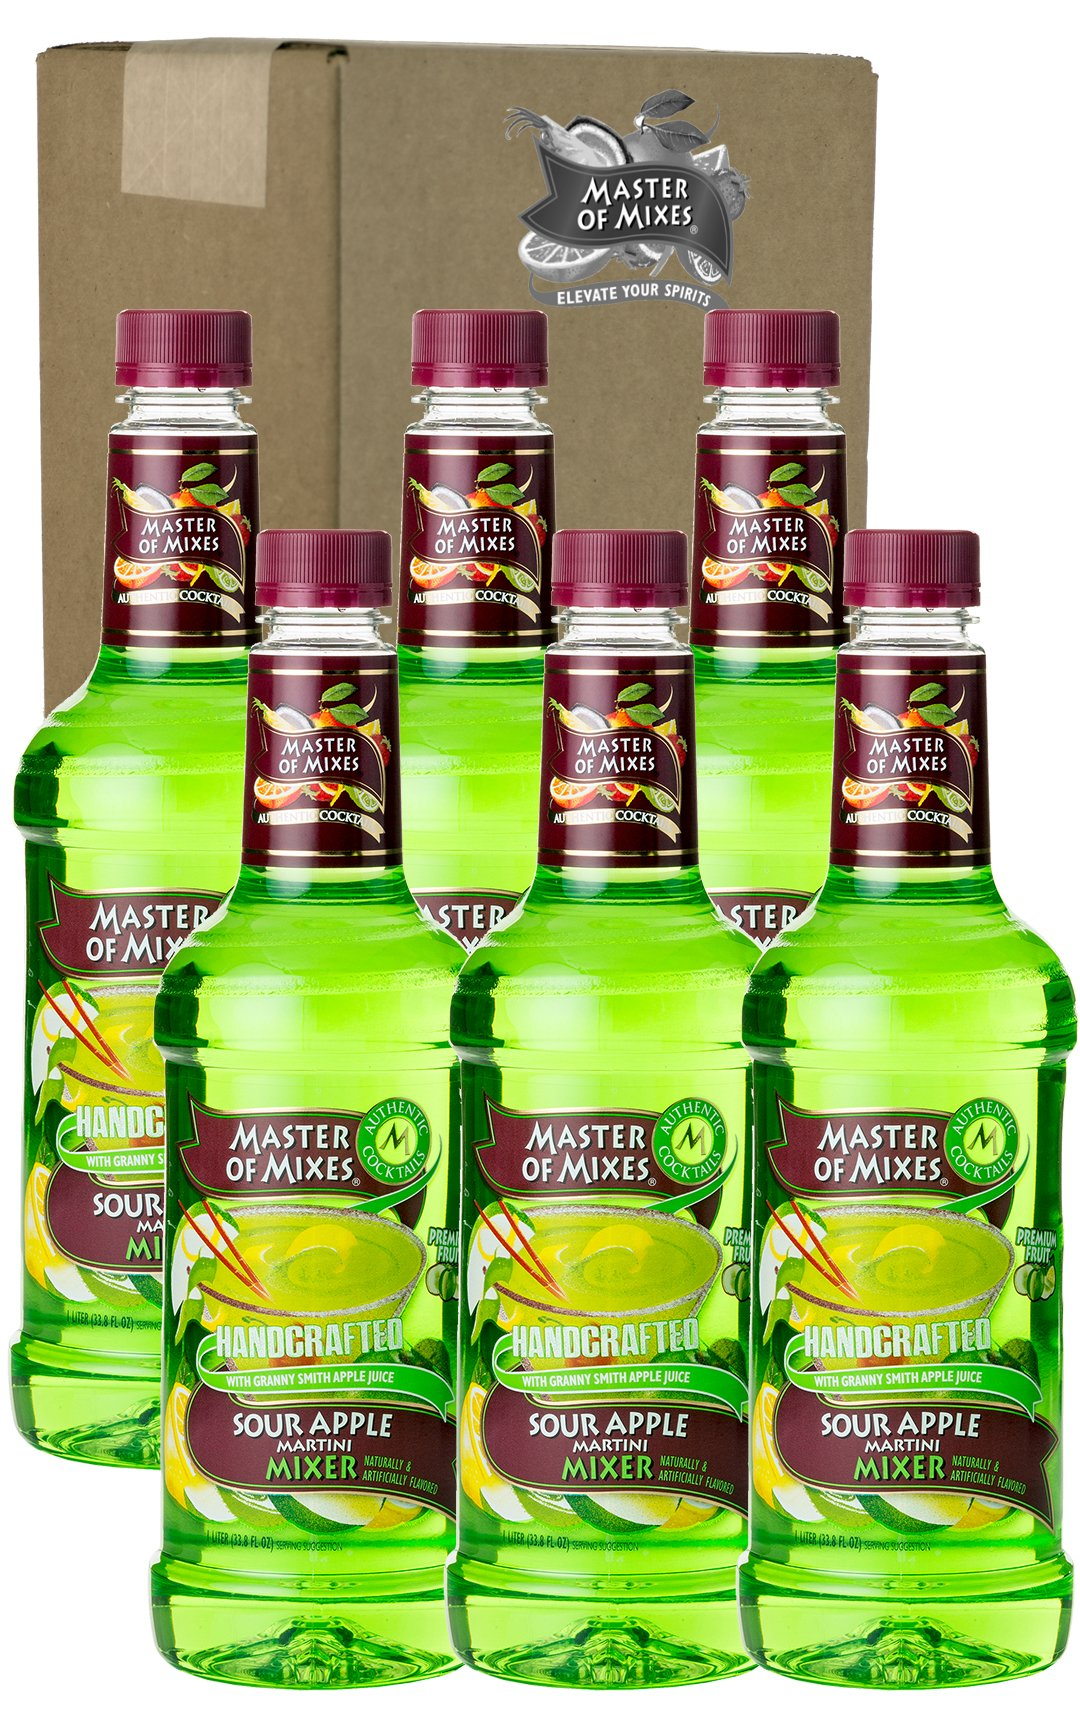 Master of Mixes Sour Apple Martini Drink Mix, Ready to Use, 1 Liter Bottle (33.8 Fl Oz), Pack of 6 by Master of Mixes